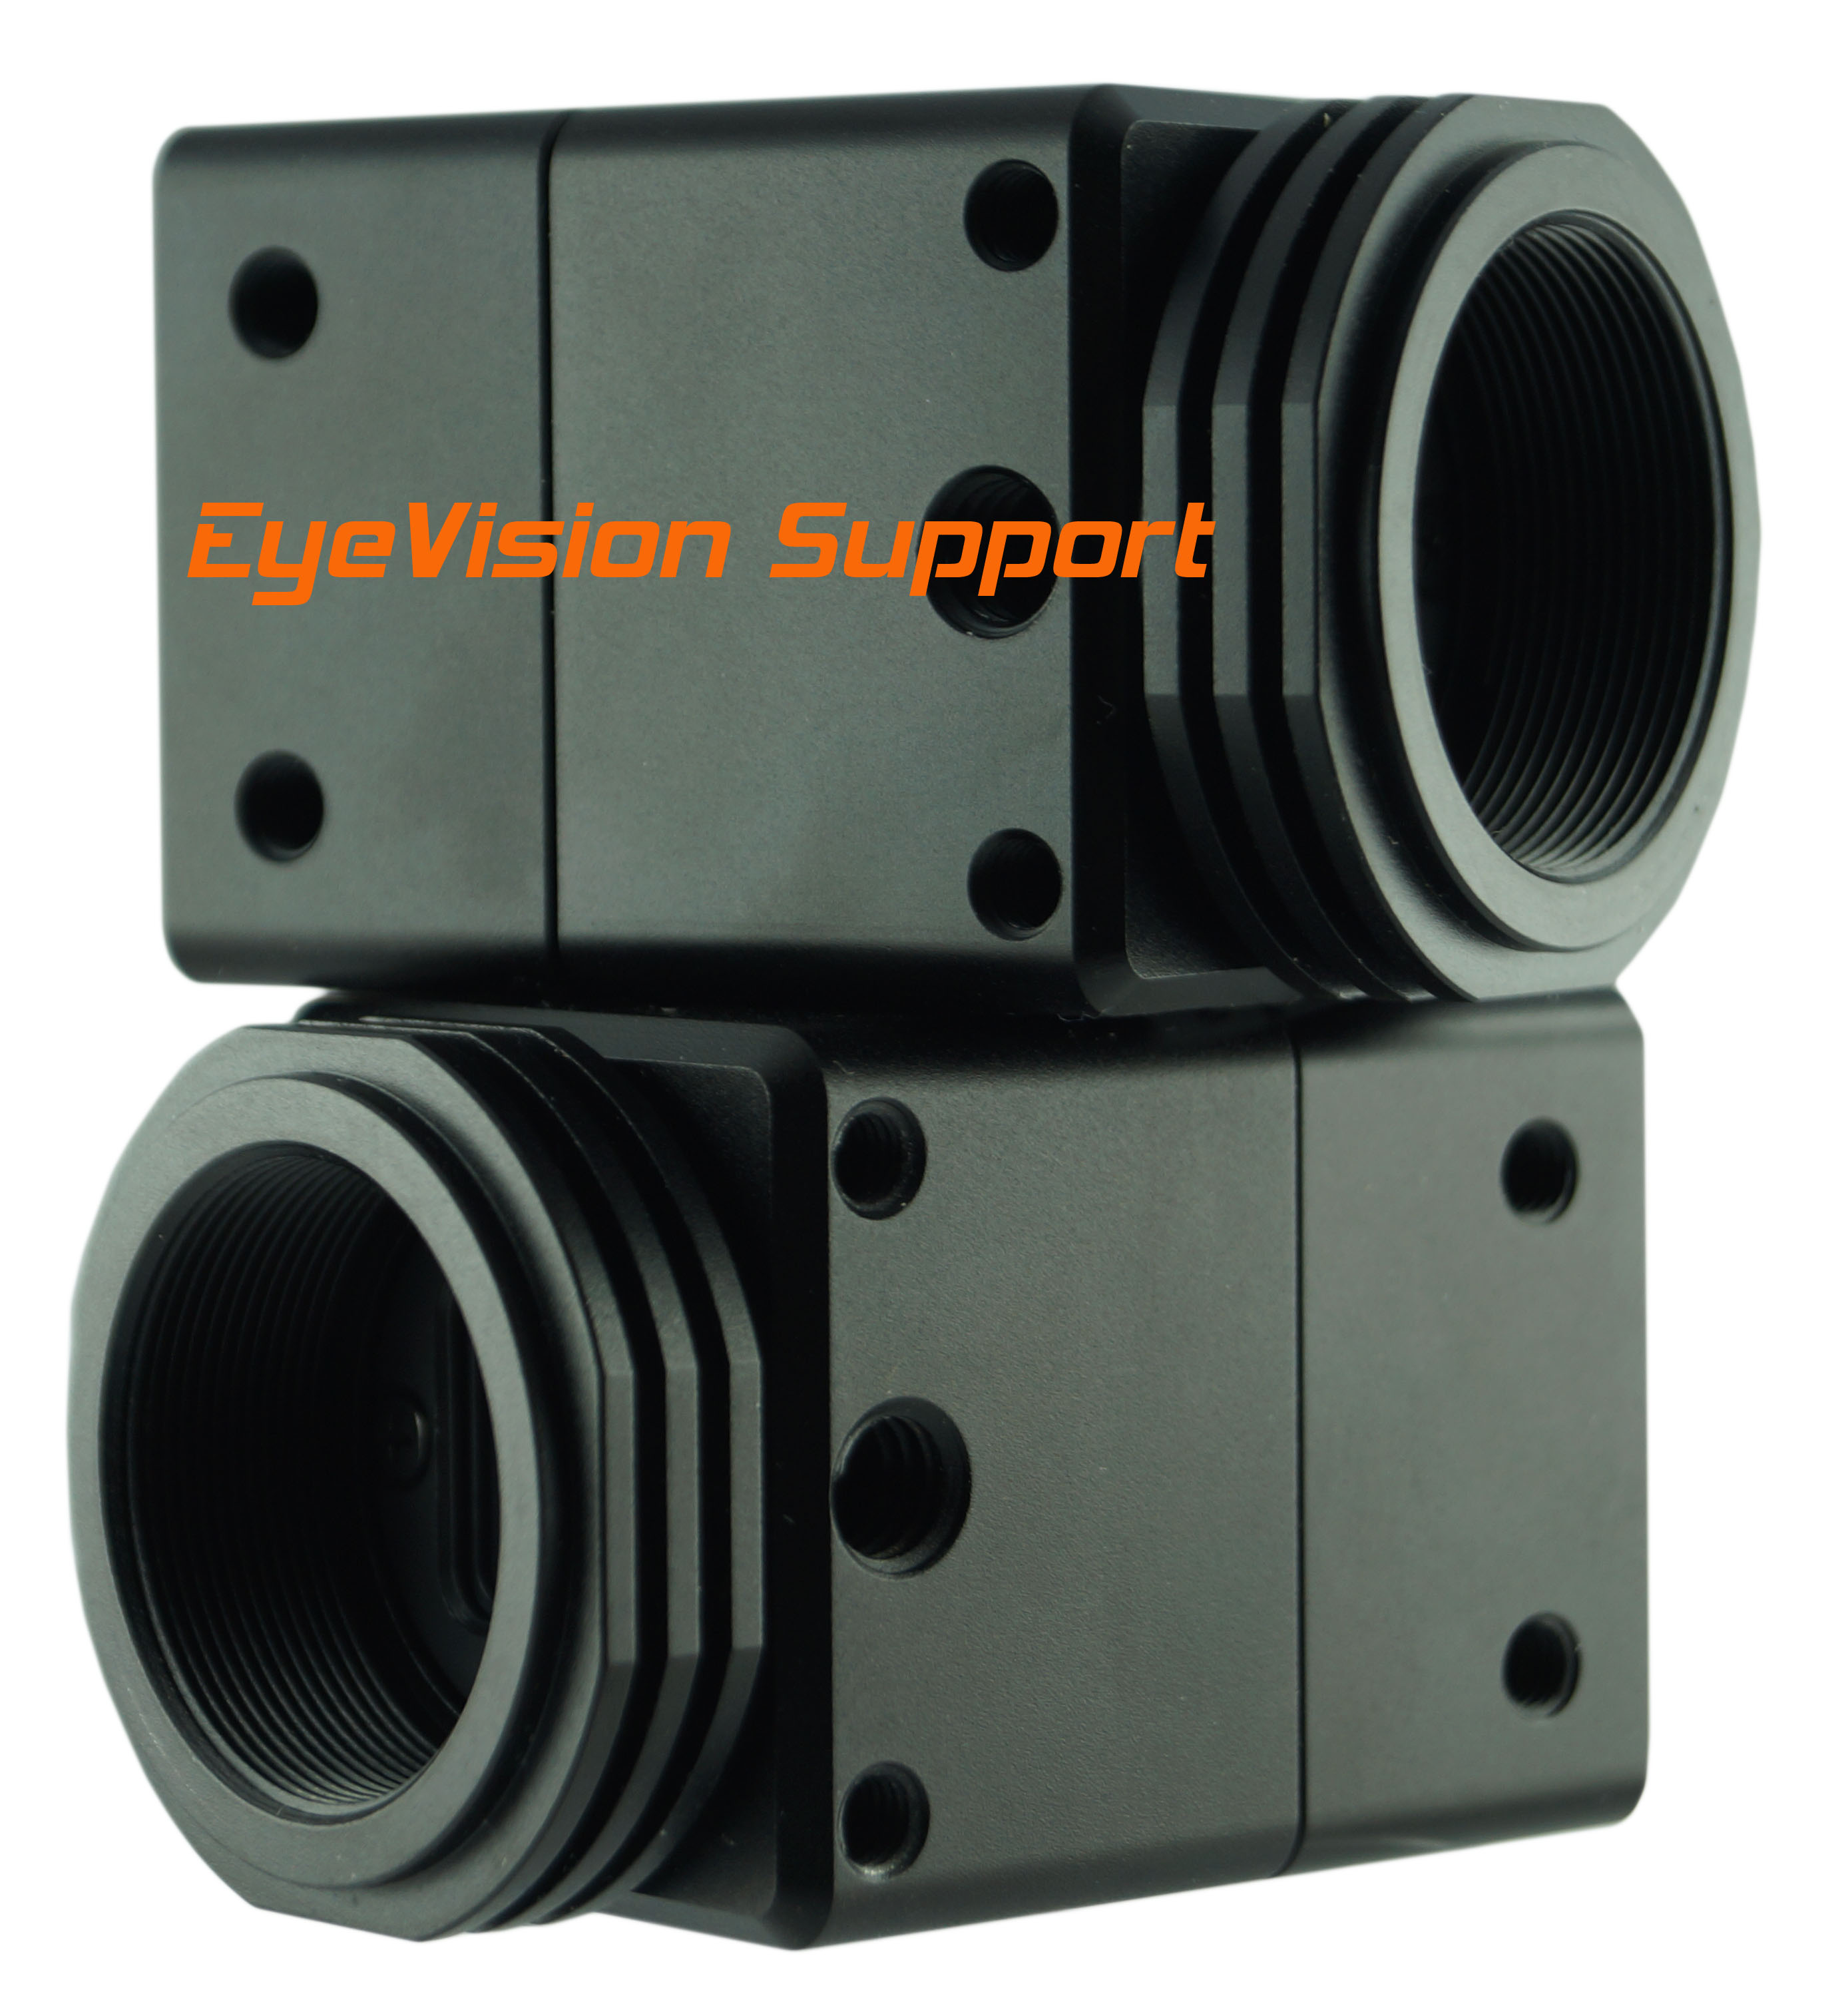 Sentech GigE cameras with EVT support